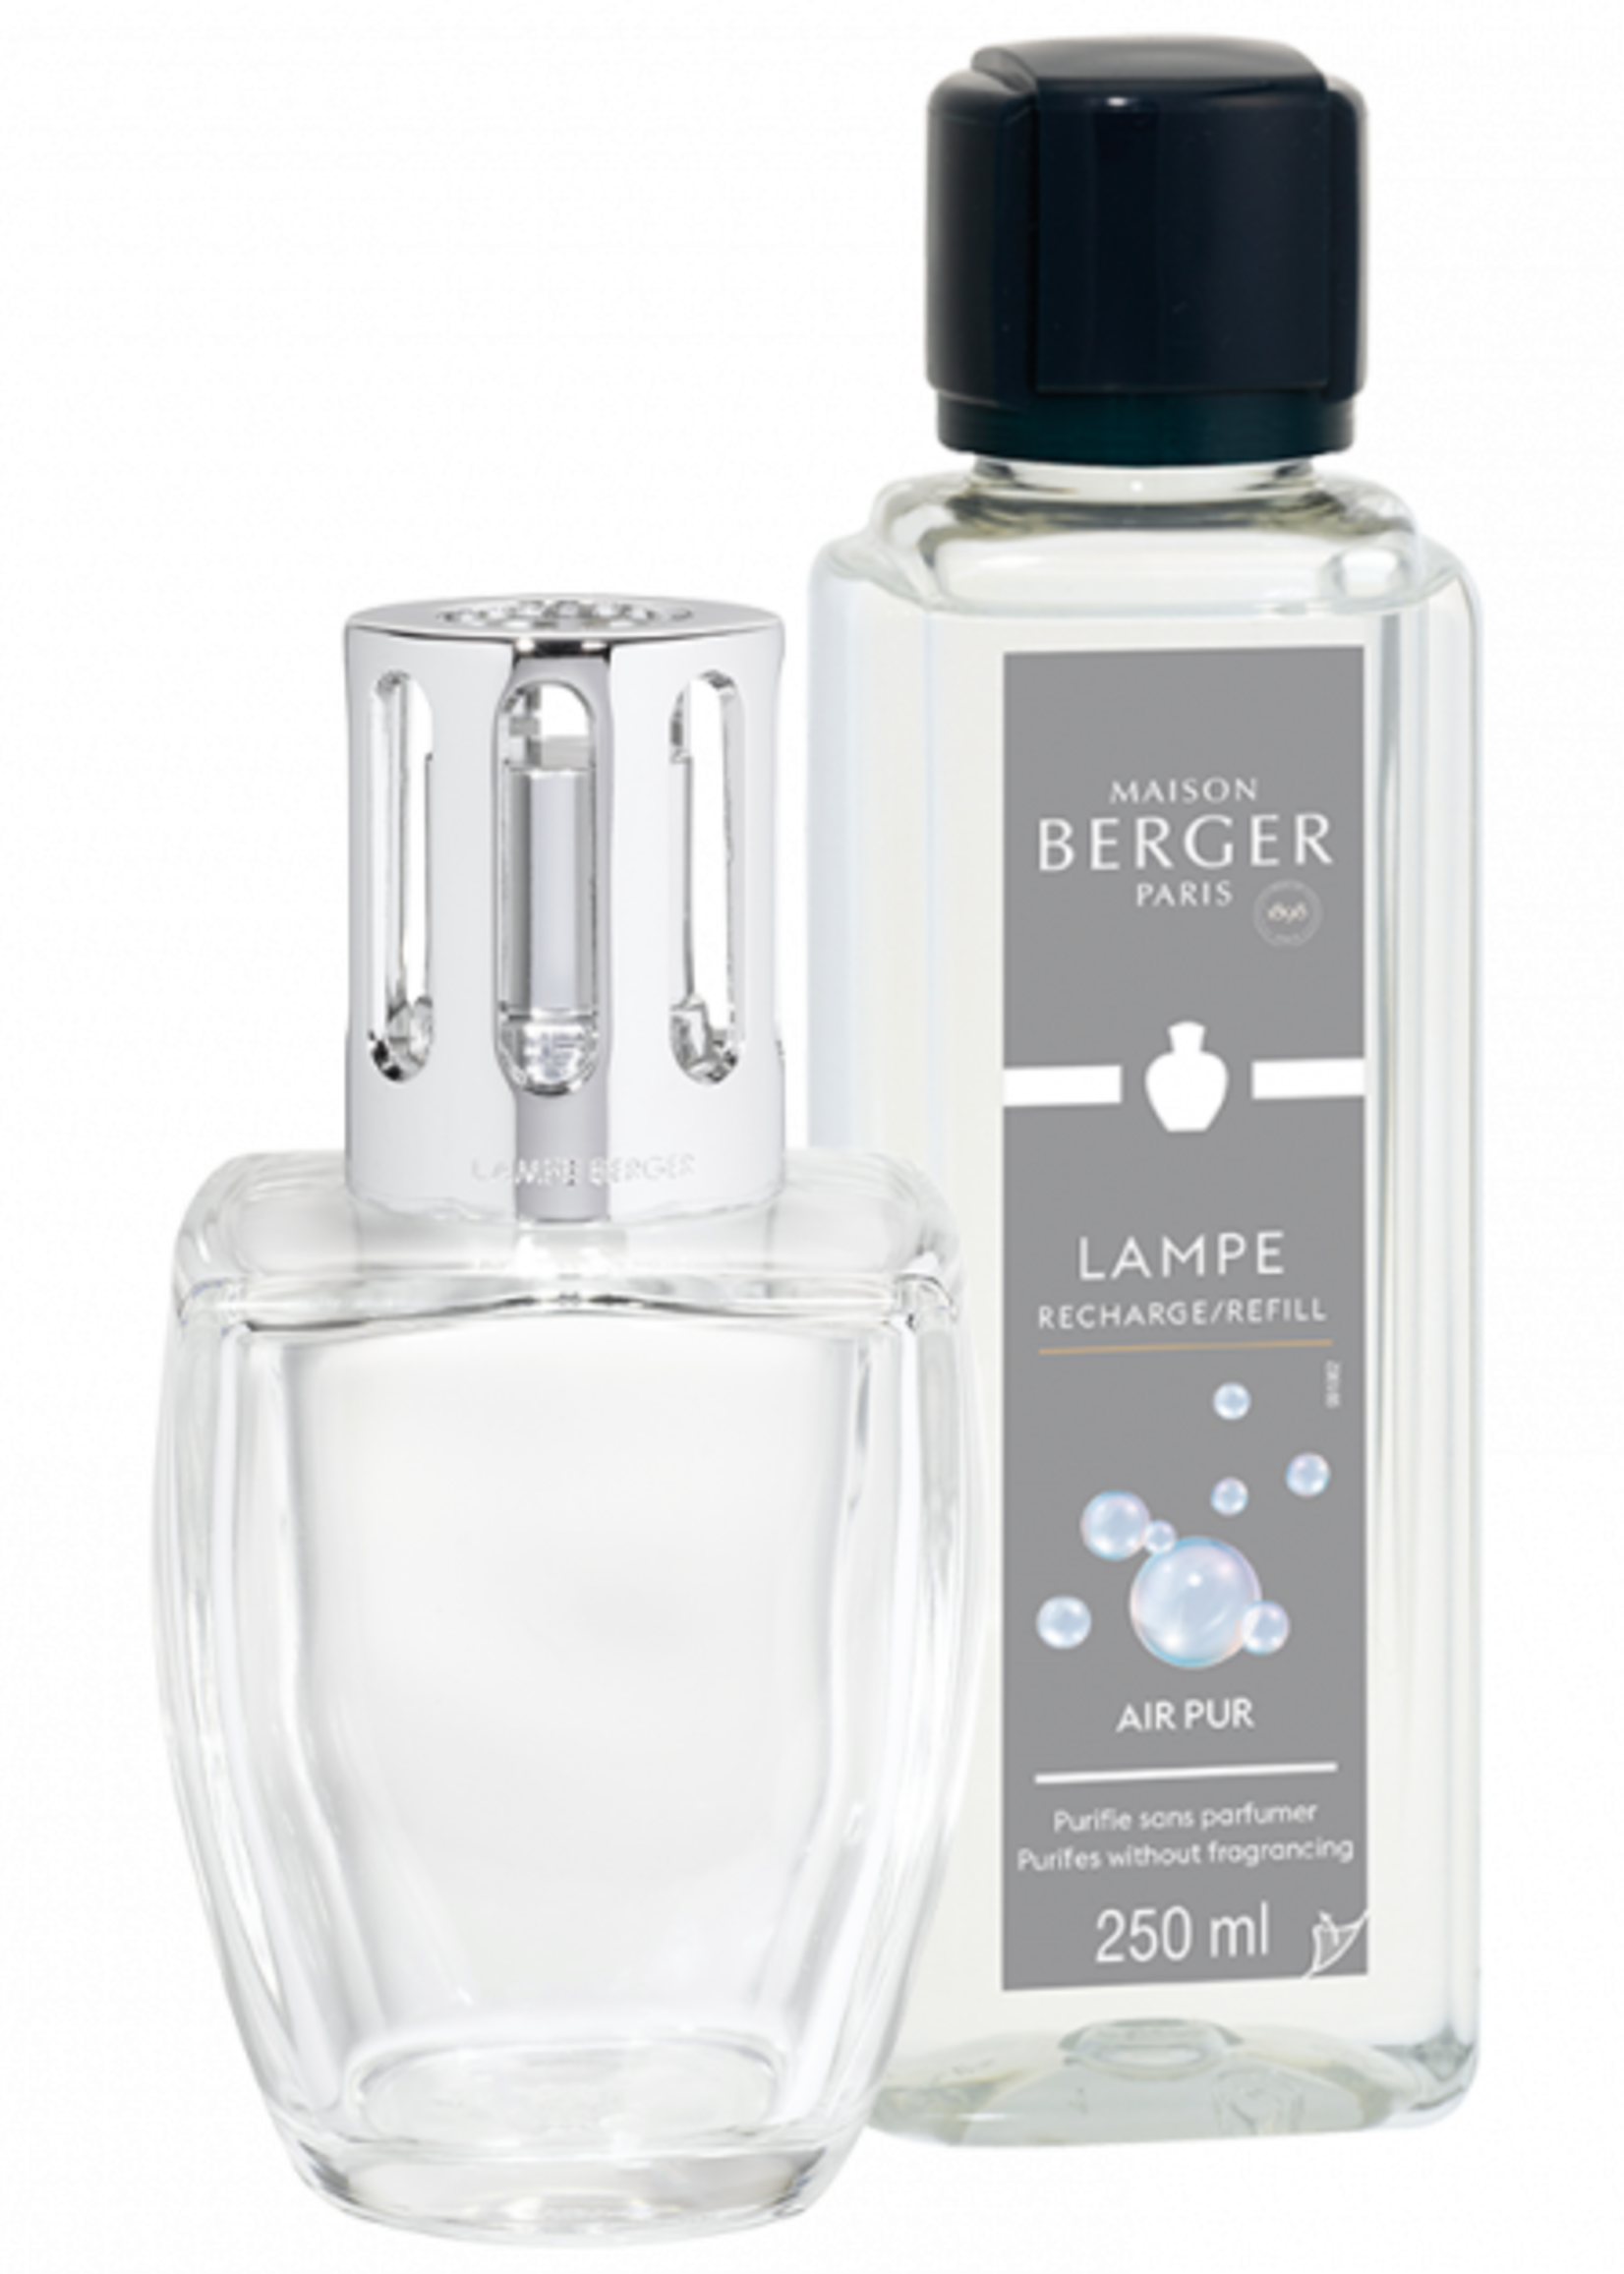 Lampe Berger Giftset Lampe Berger June Transparente